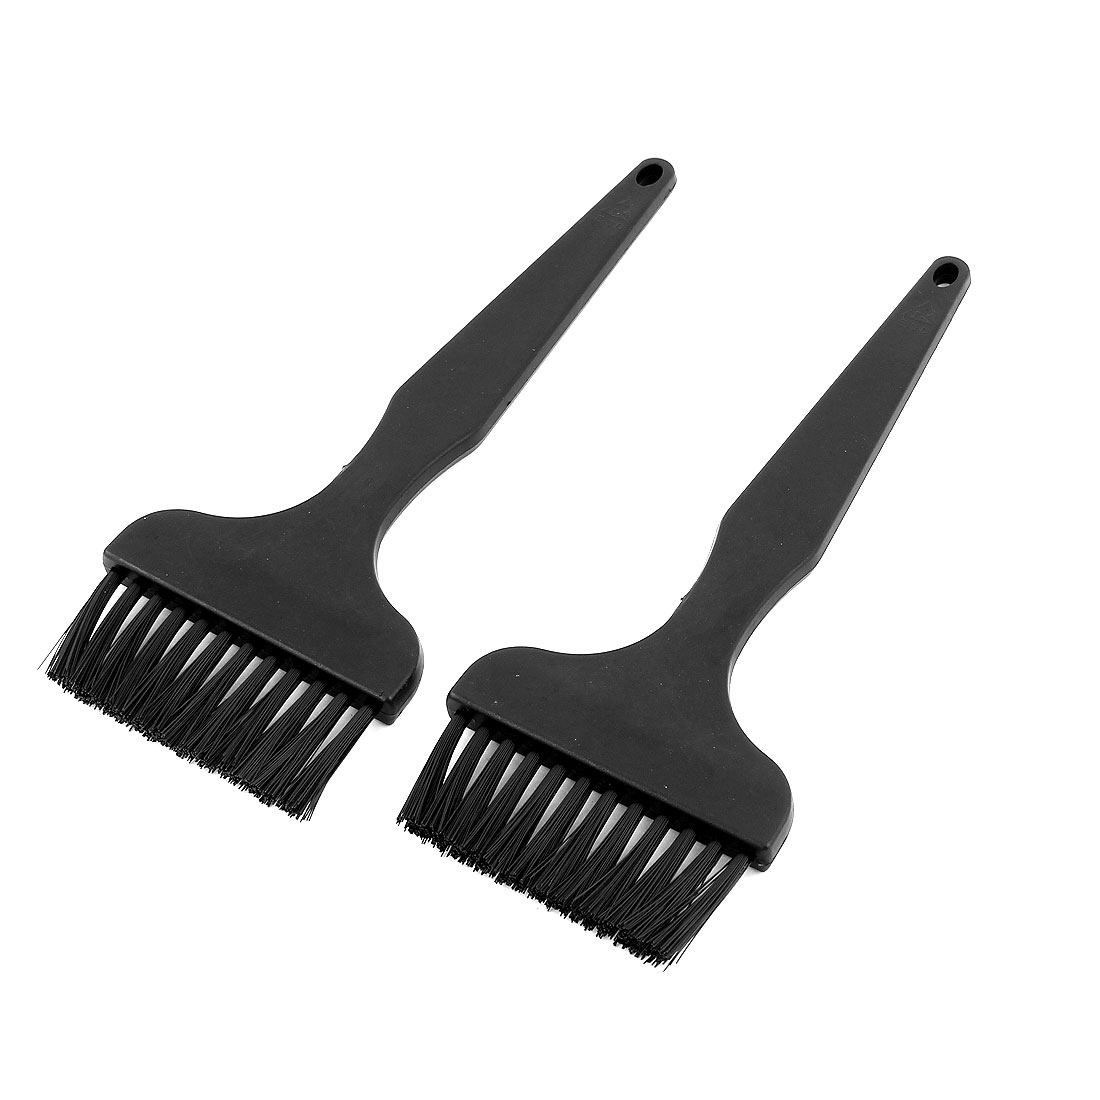 Plastic Portable Black ESD Cleaning Anti Static Brush 2 Pcs